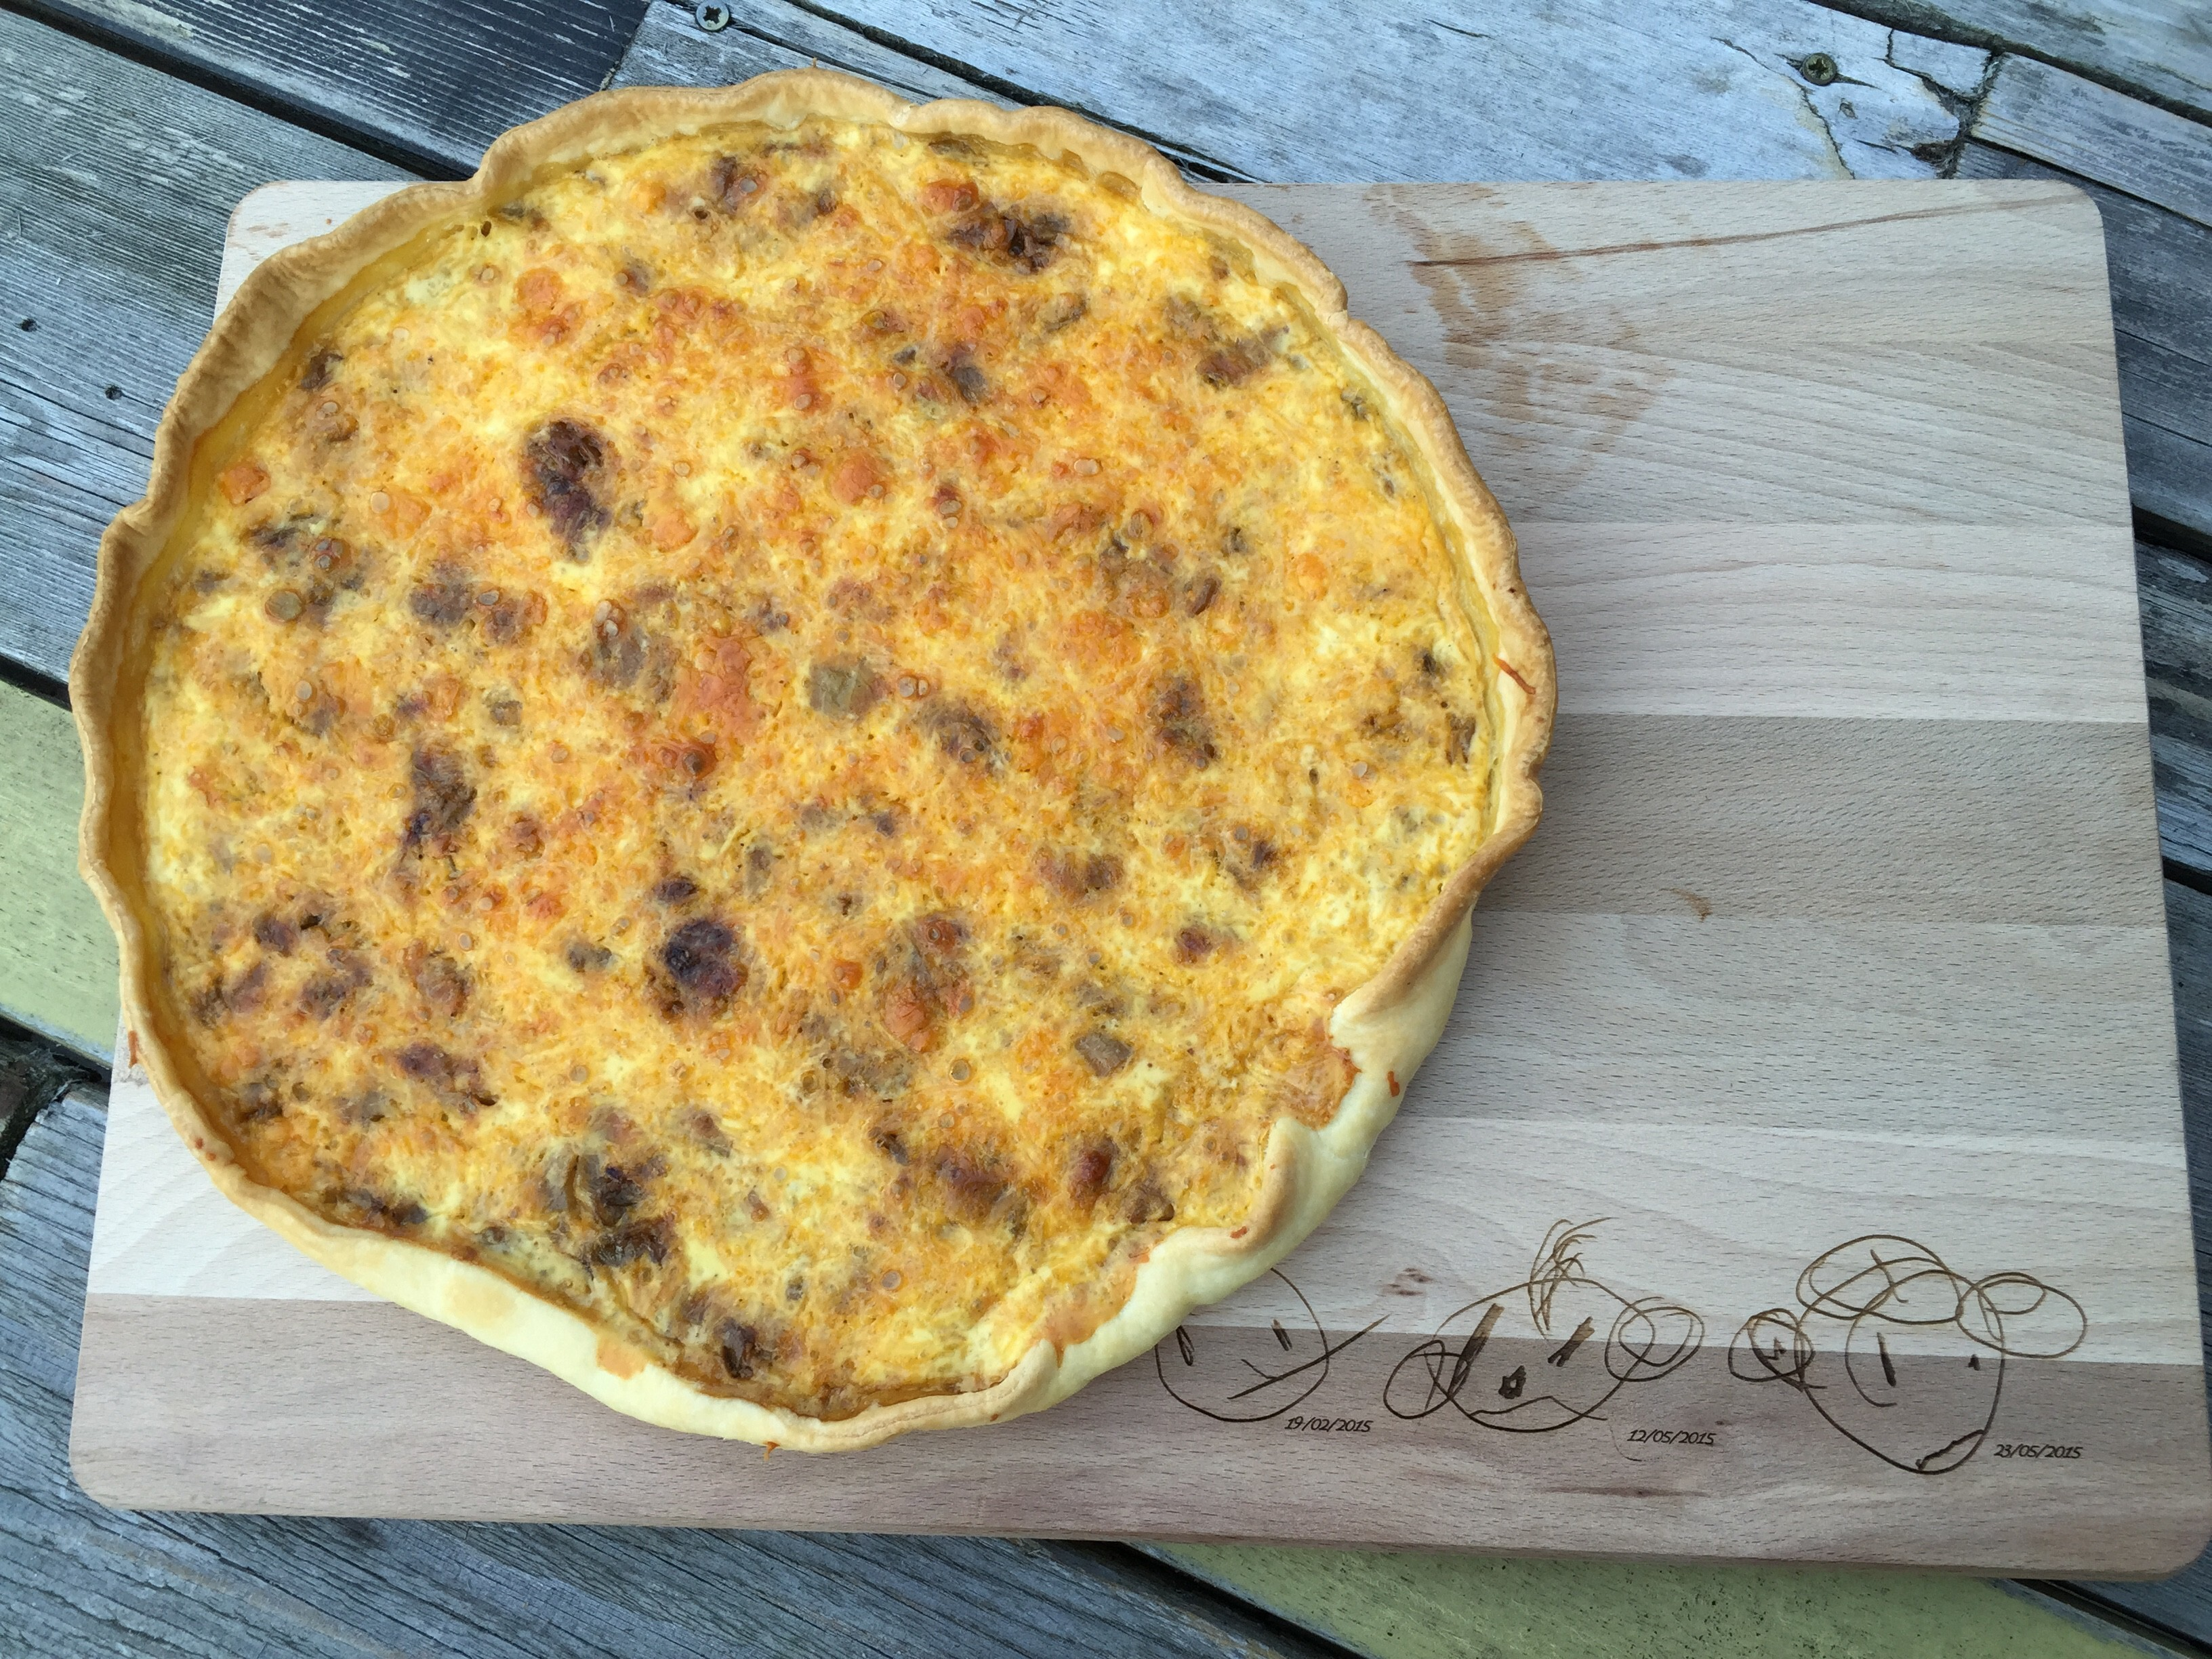 Quiche met witloof en cheddar